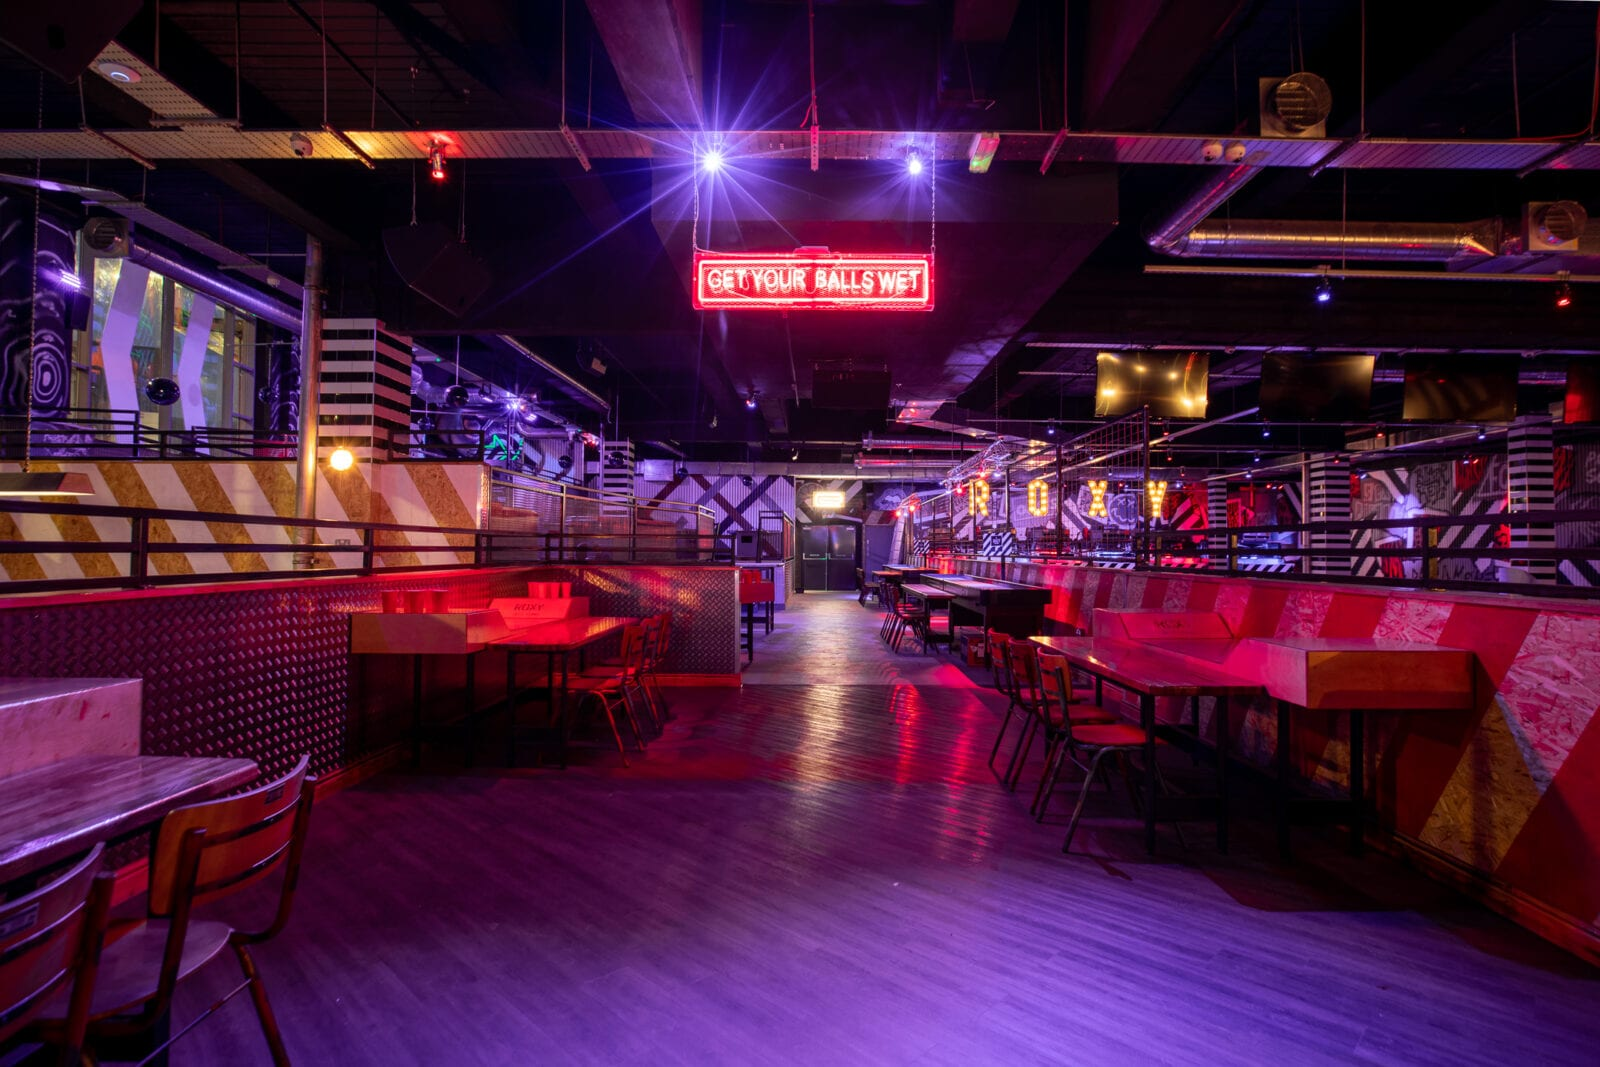 Roxy Ball Room has set out reopening plans for its Manchester venues, The Manc